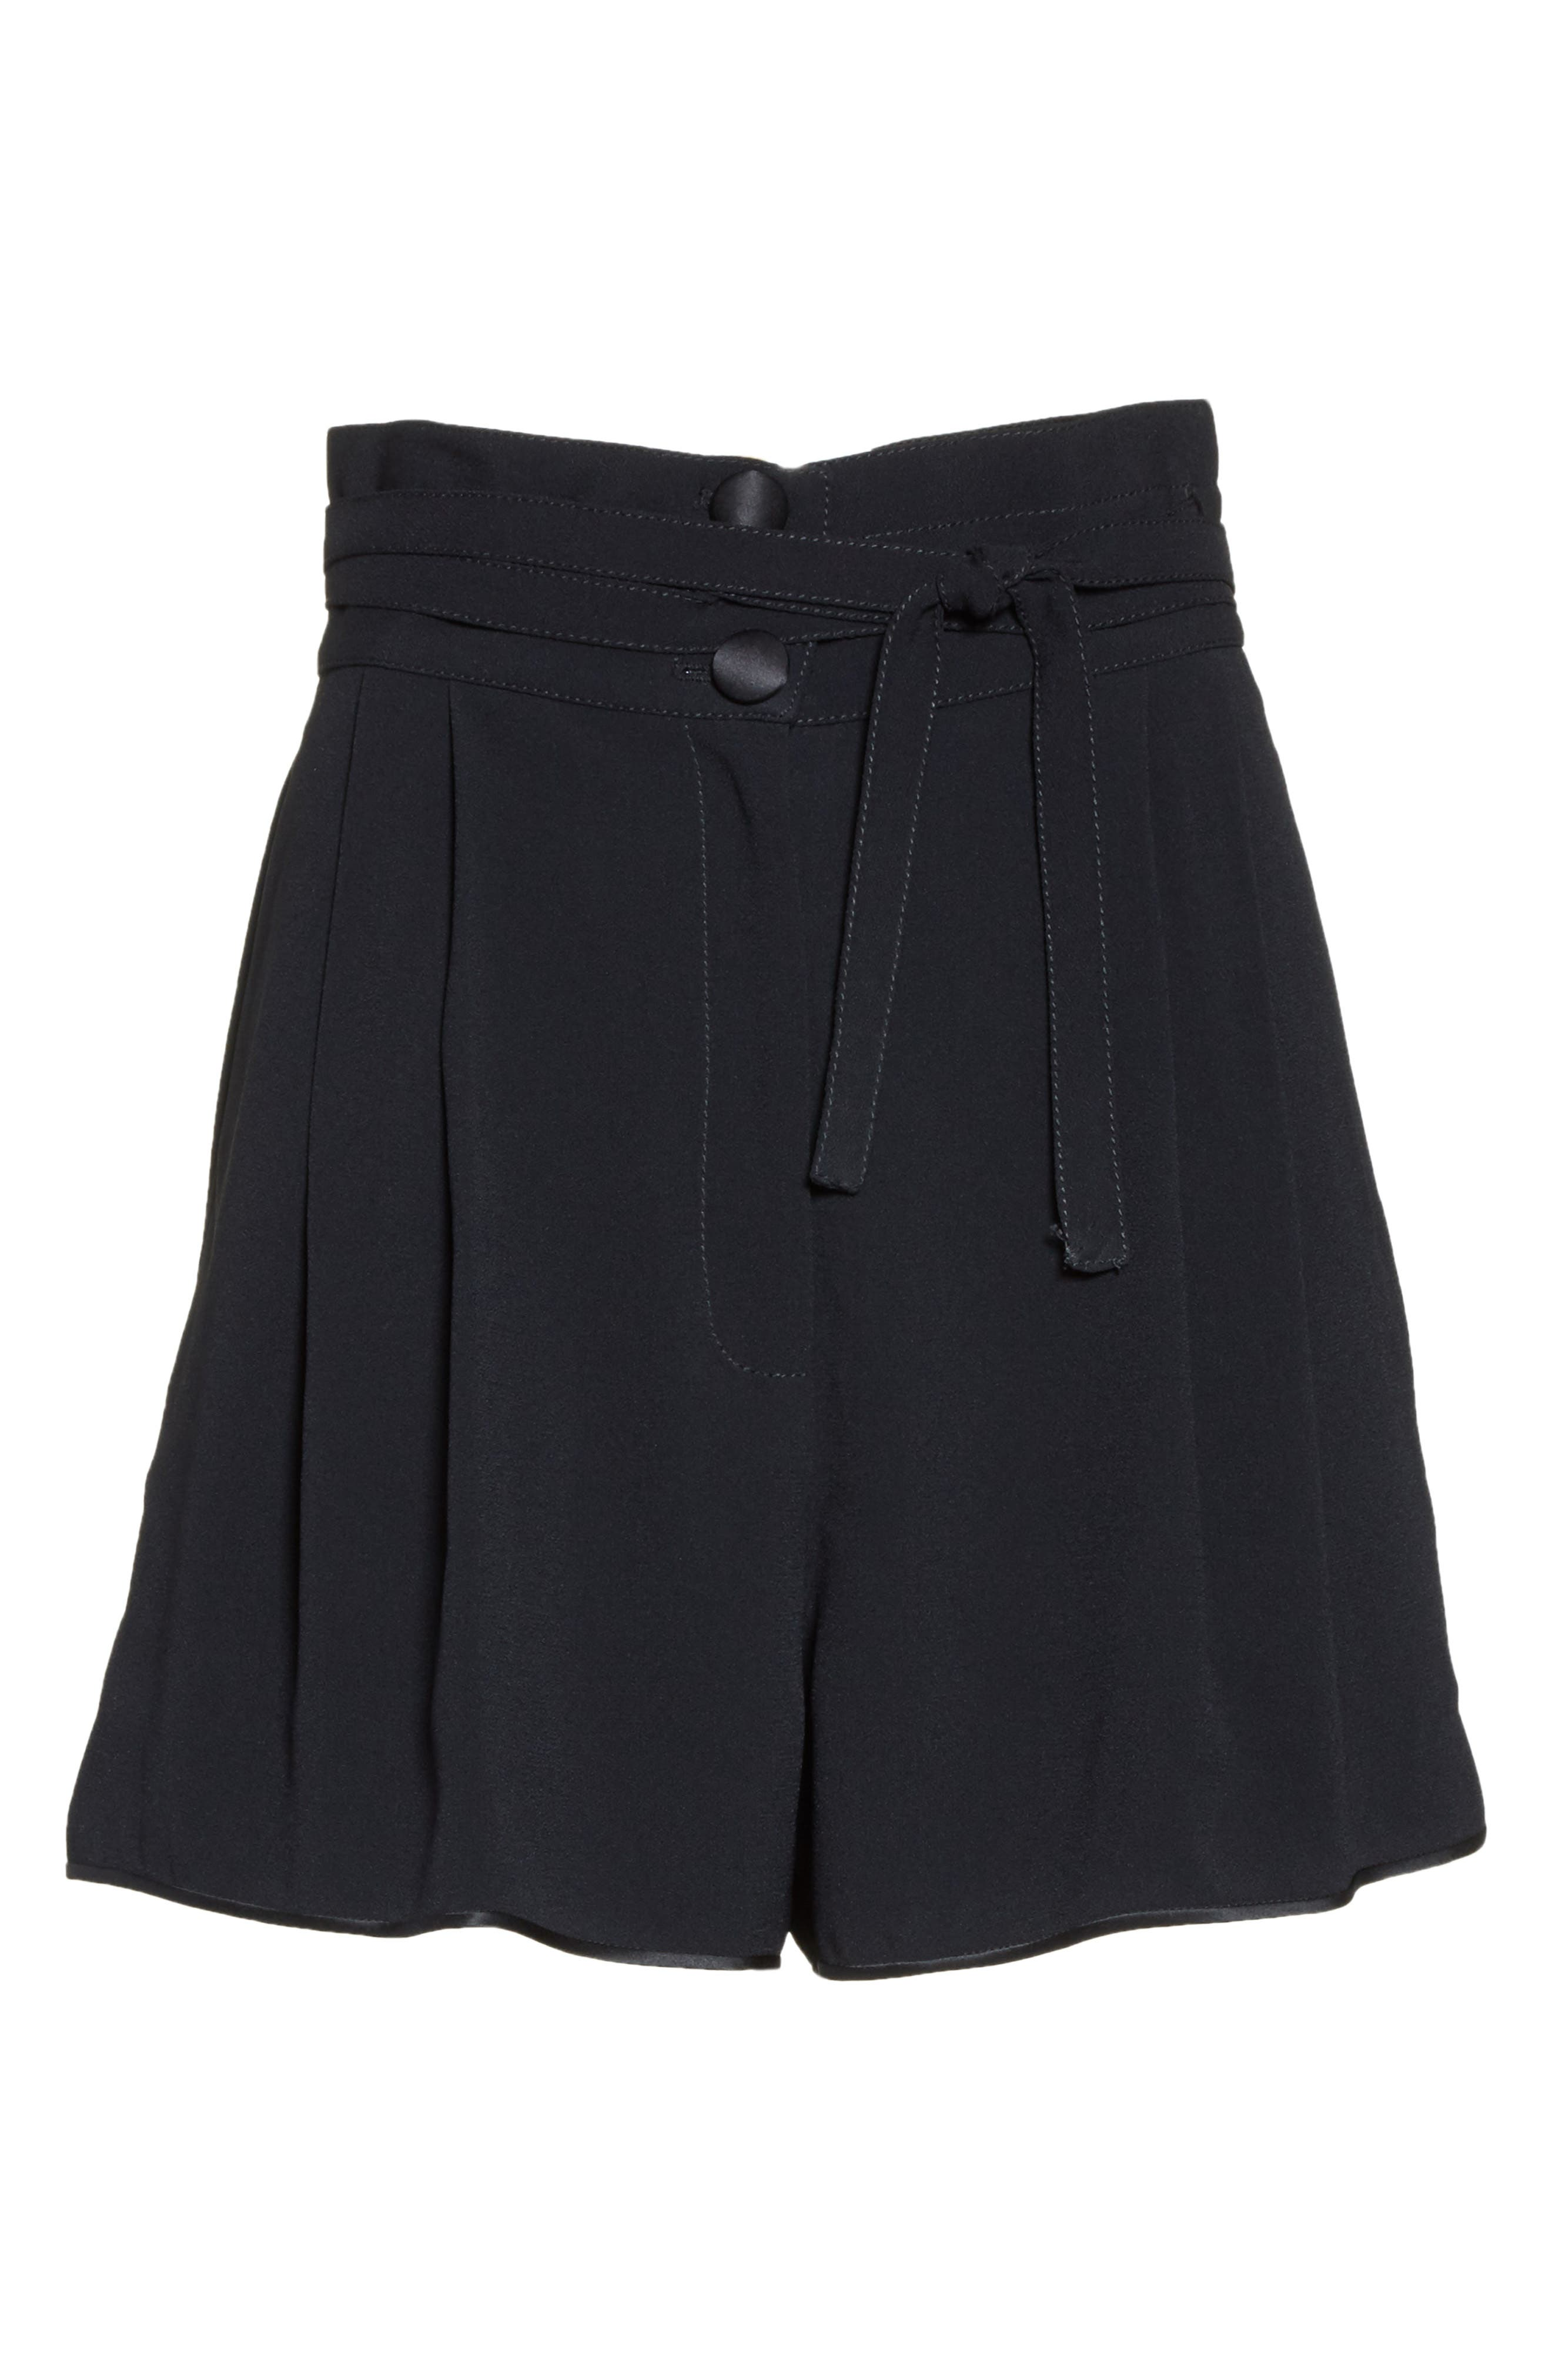 Alternate Image 4  - MARC JACOBS Tie Waist Shorts